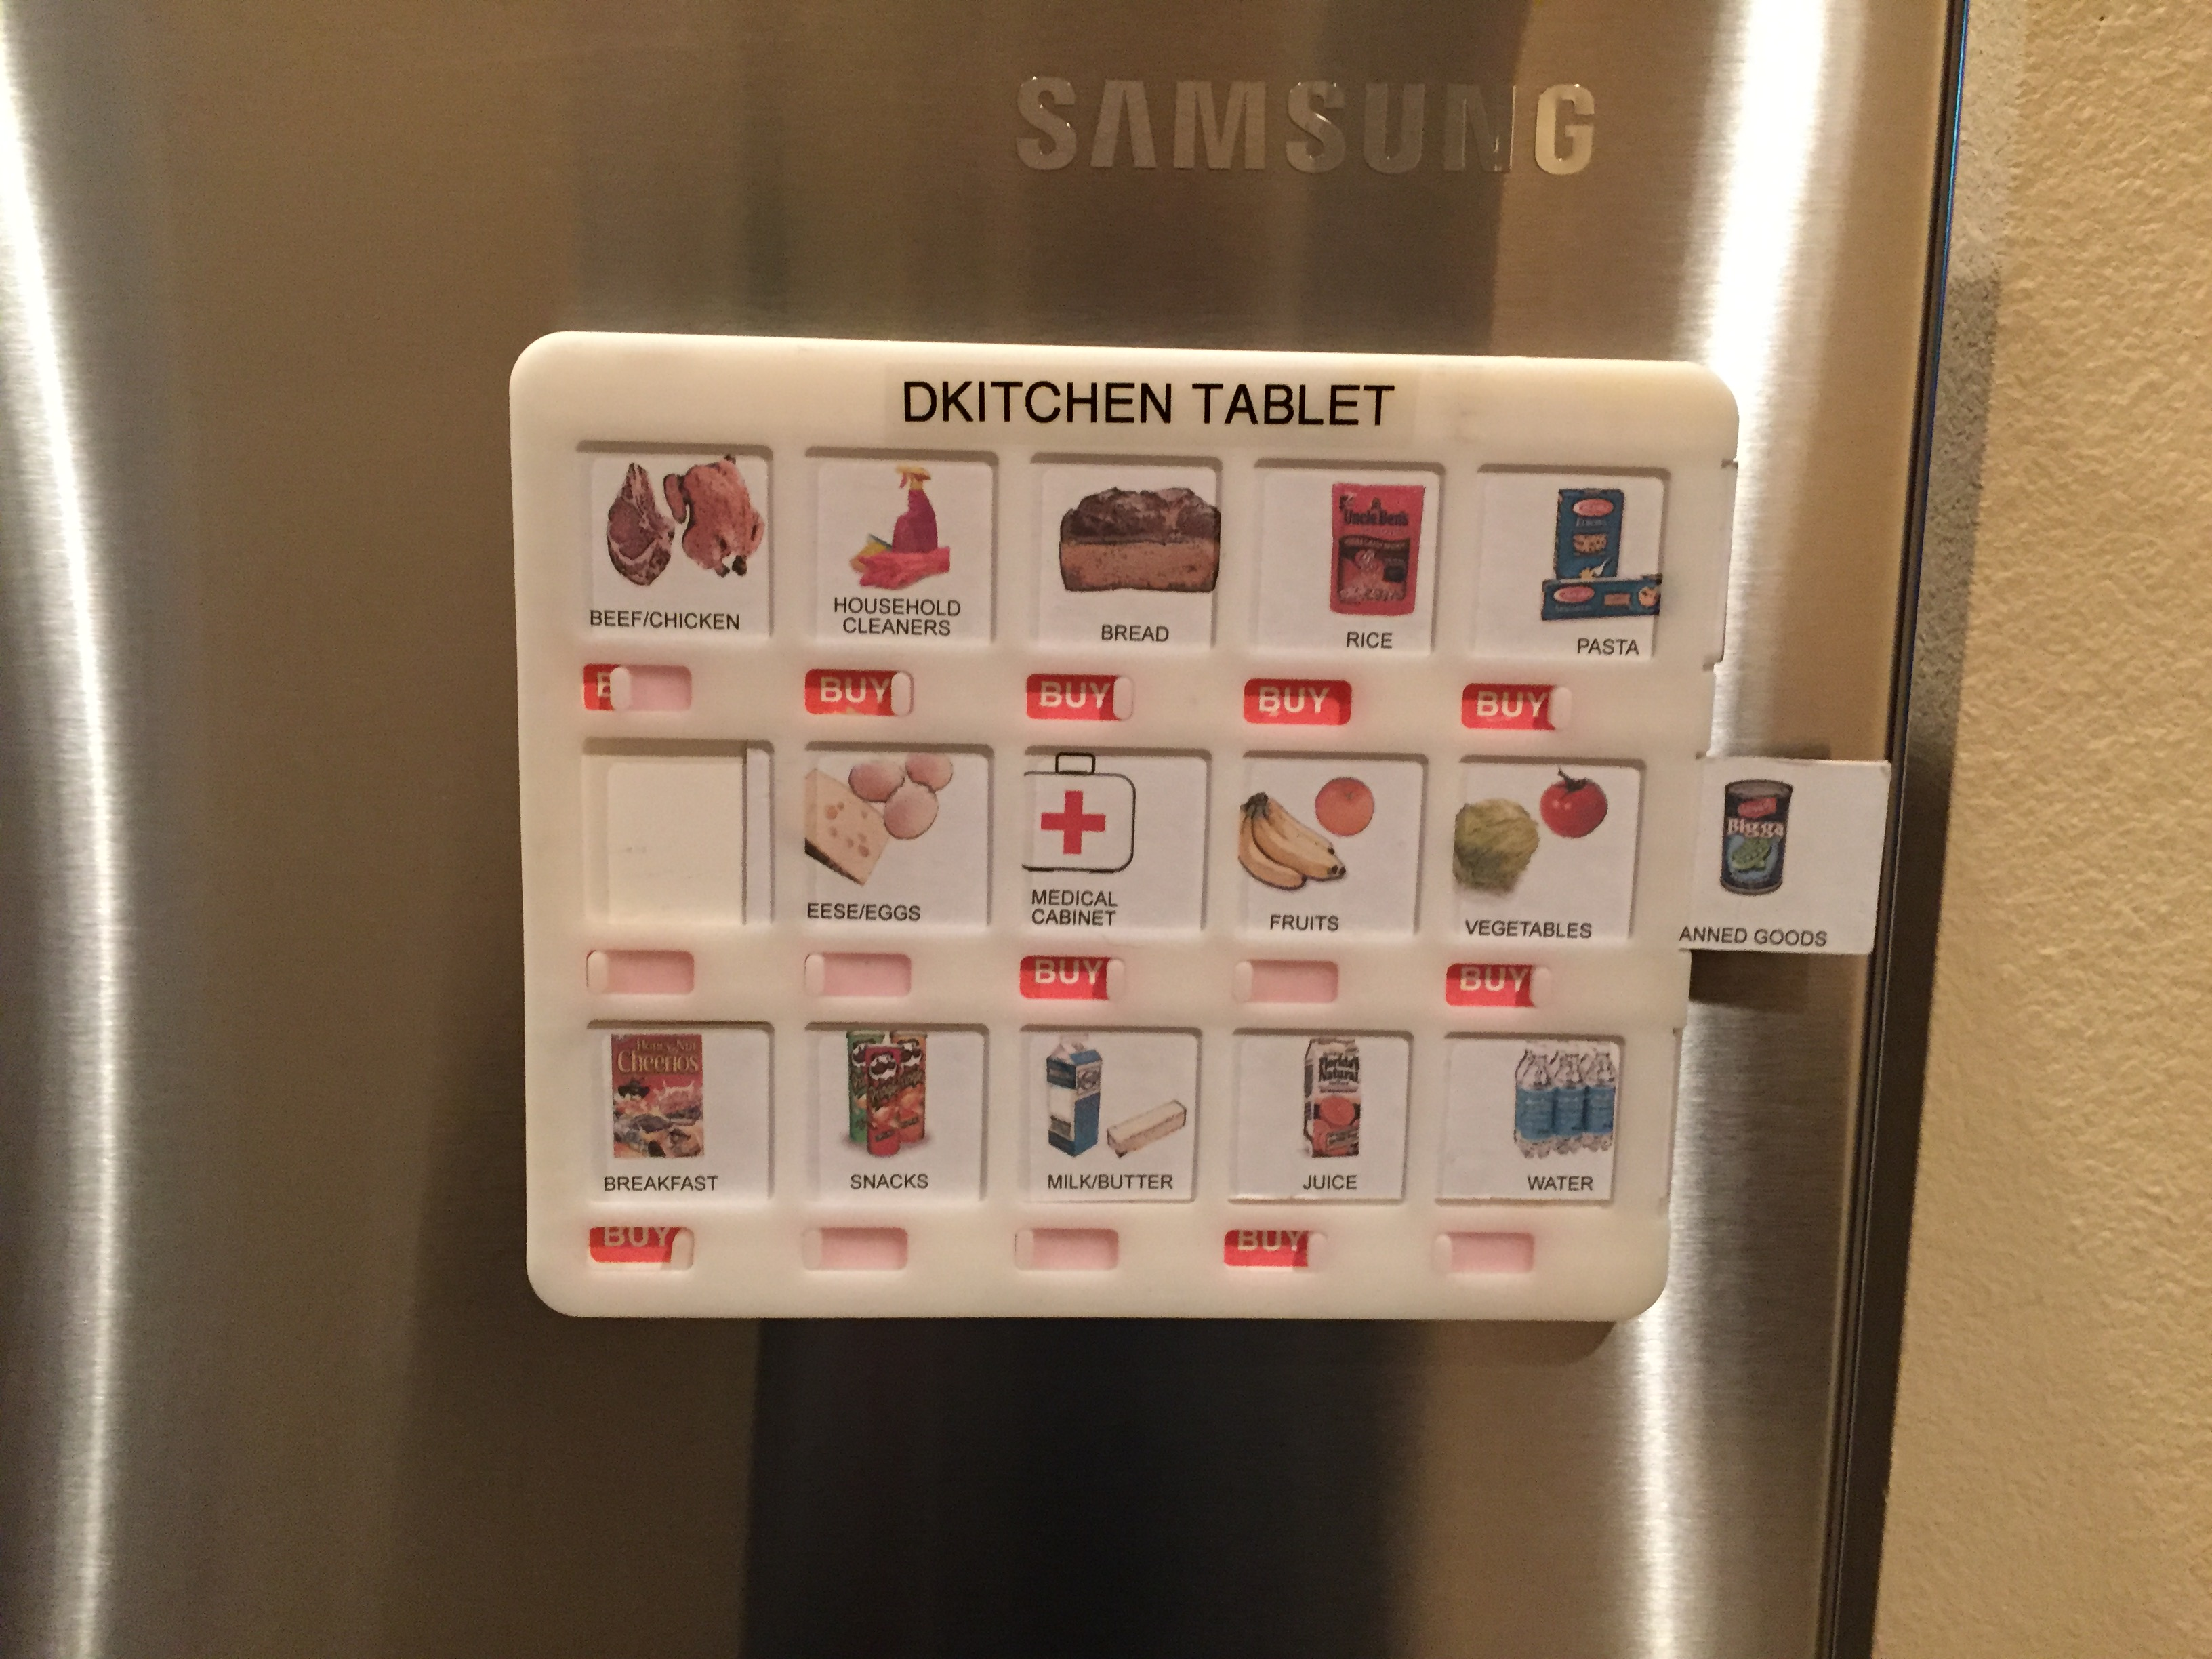 DKitchen Tablet